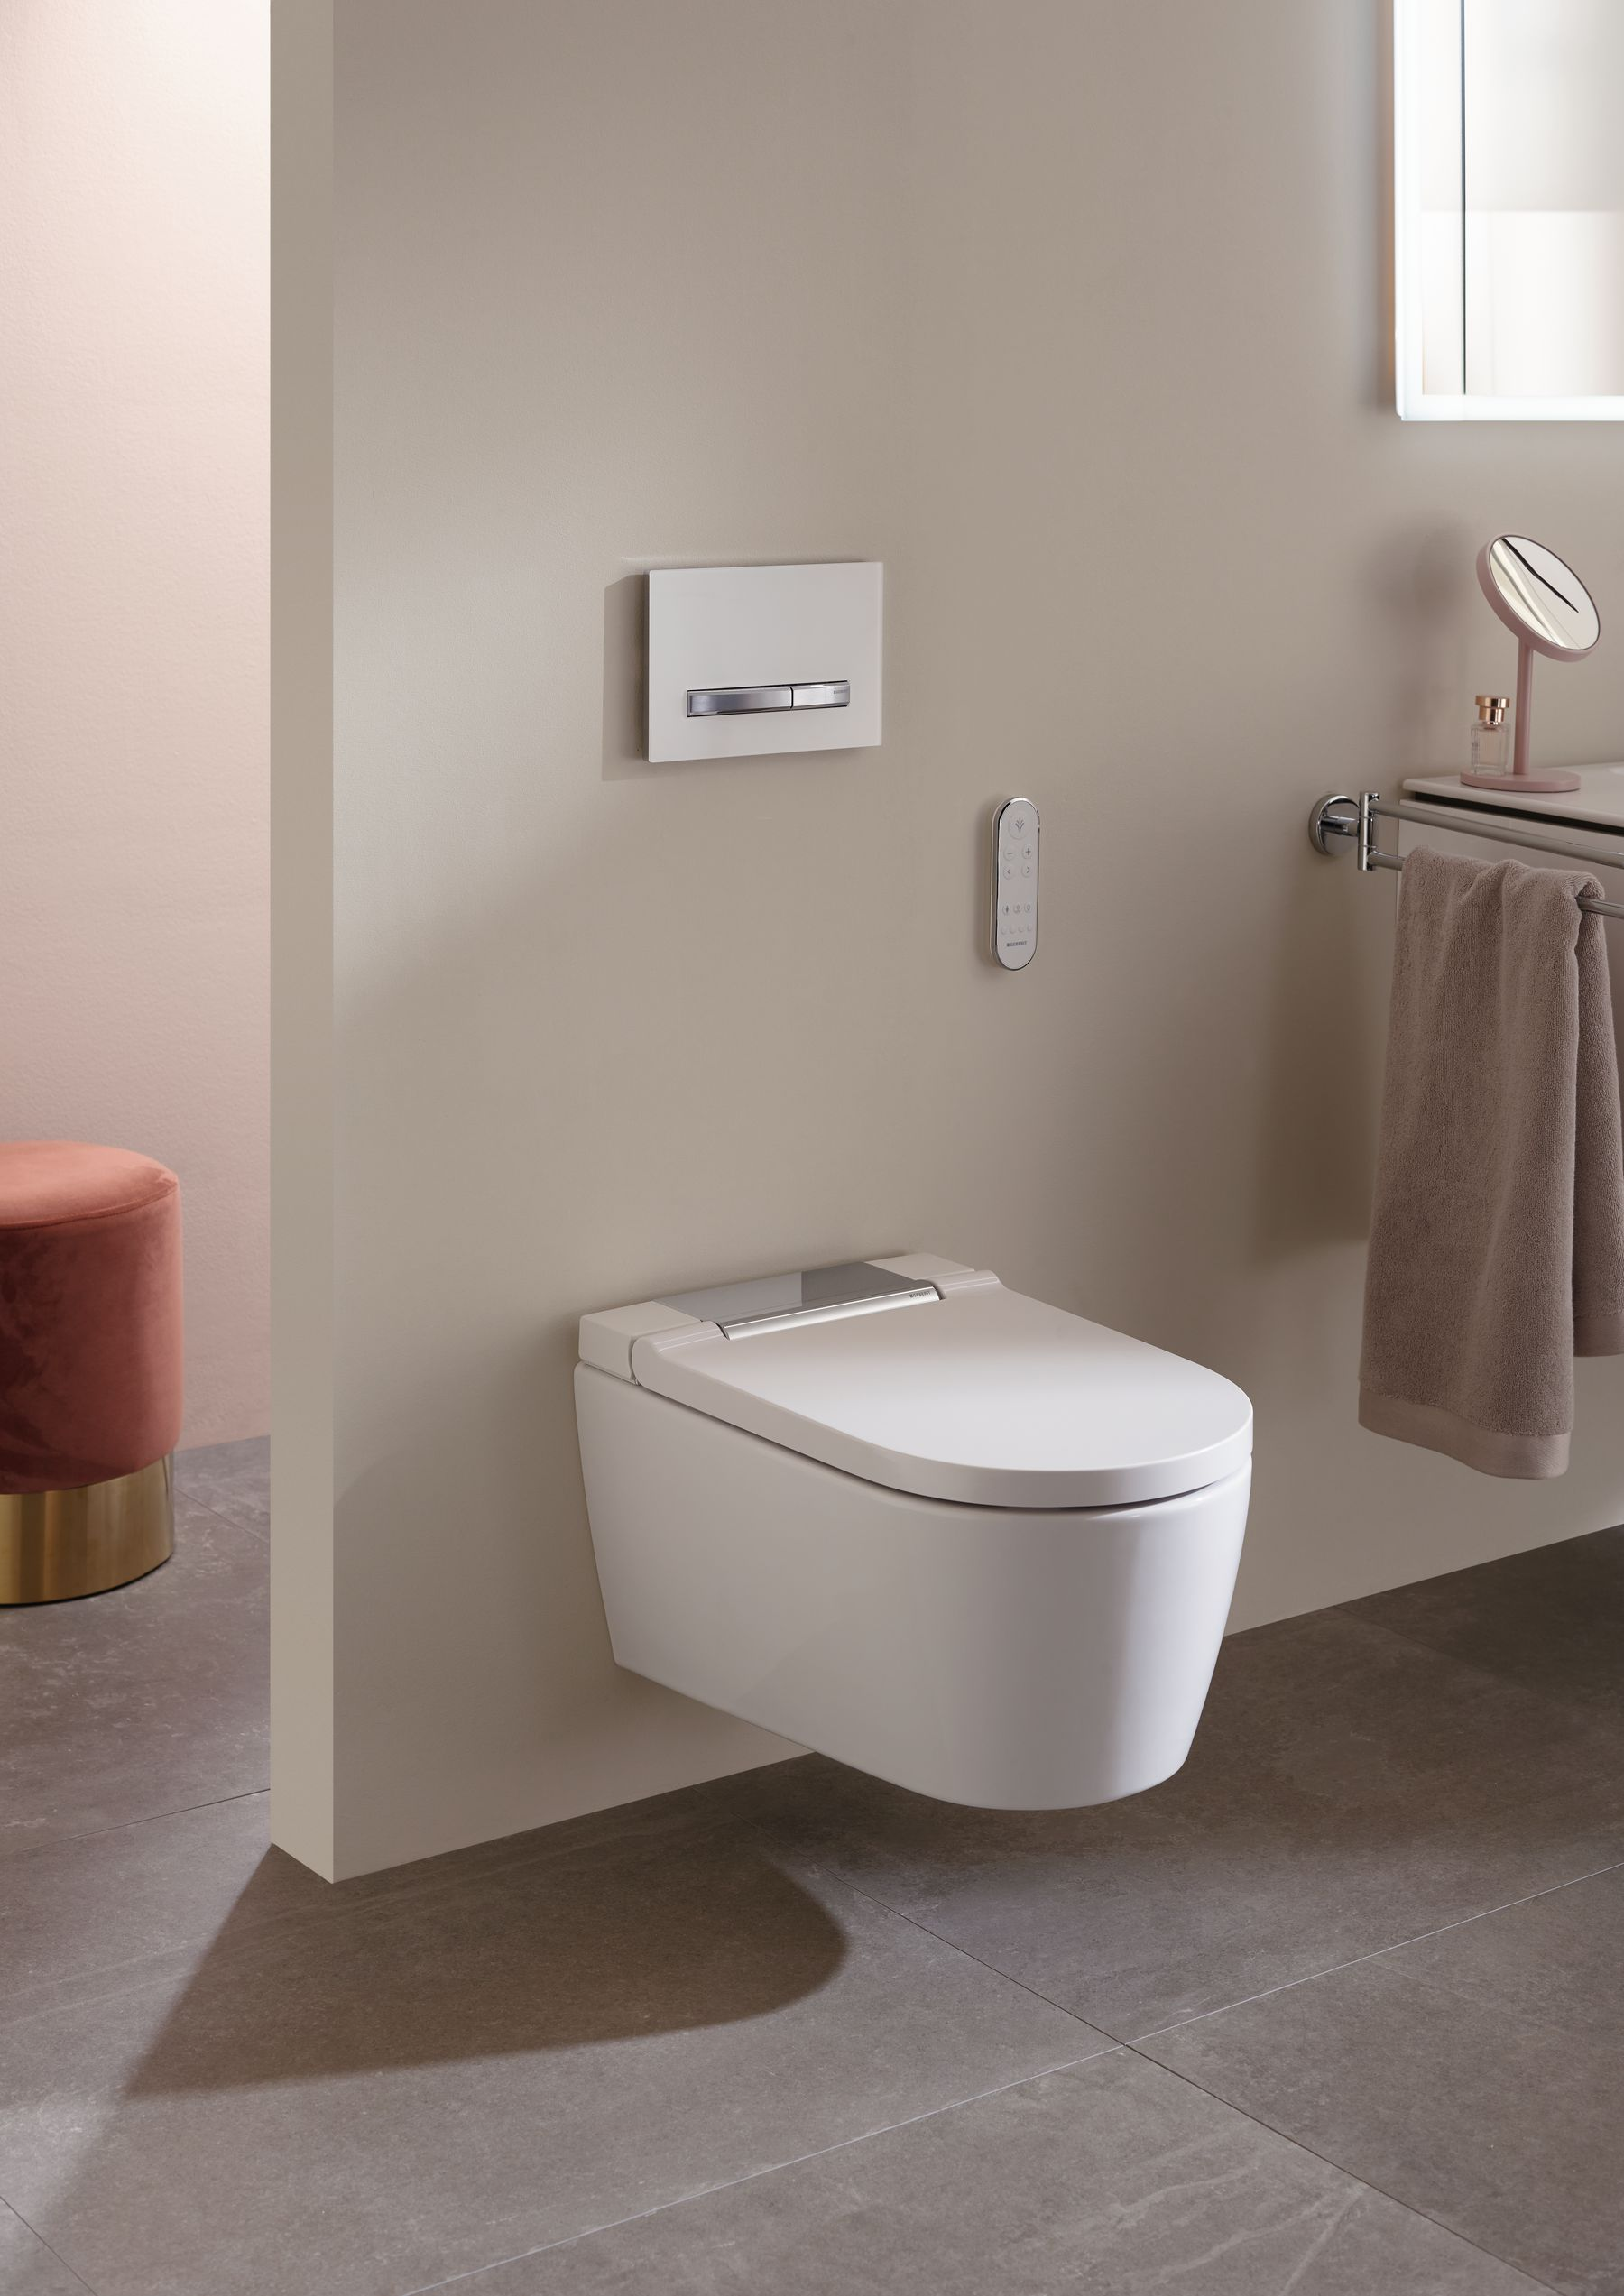 2020 Bathroom 1 L Geberit AquaClean Sela Big Size